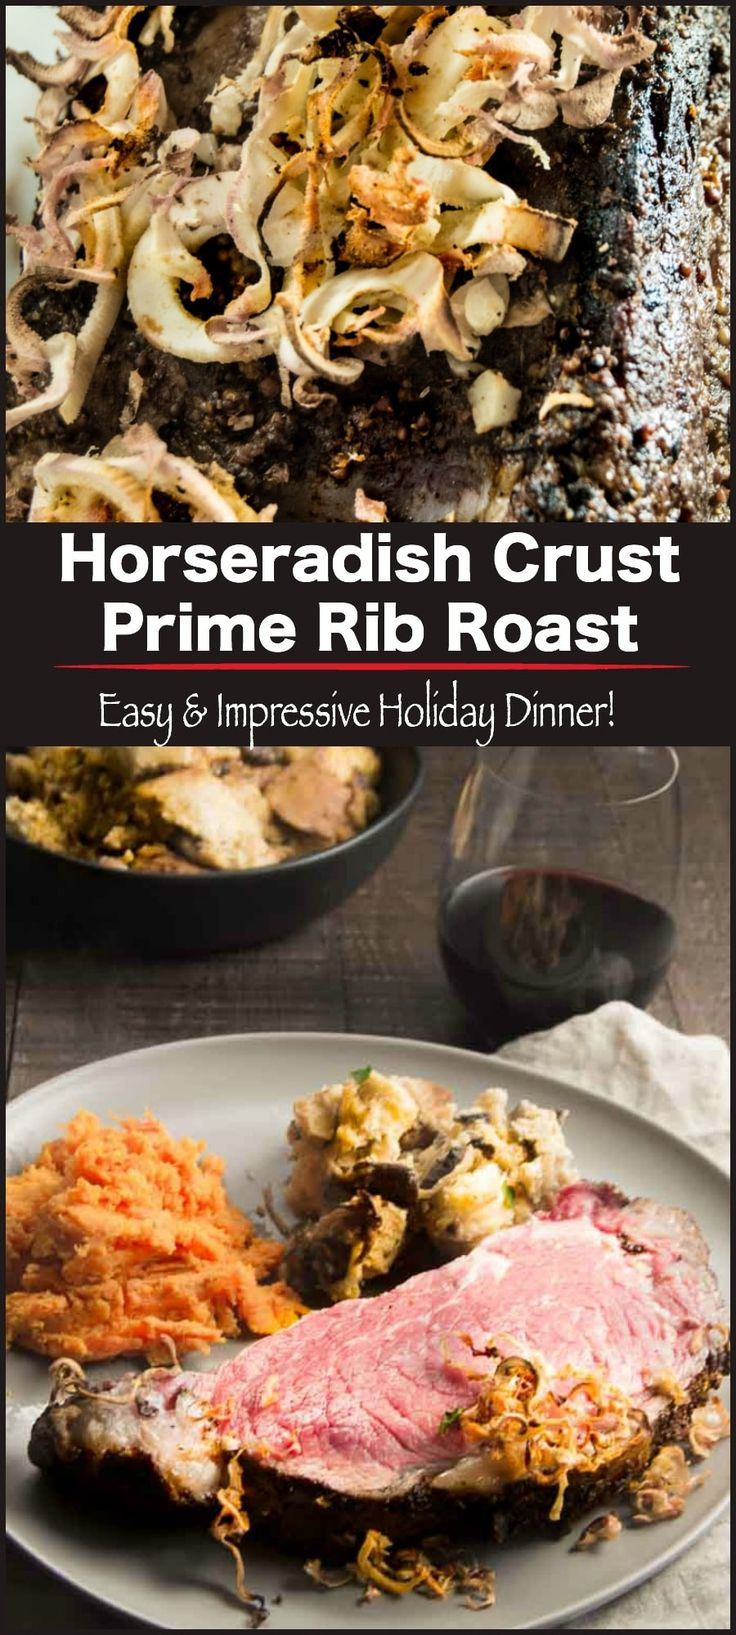 Horseradish Crust Ribeye Roast: A meal you will feel like you are at the fanciest restaurant. Flavored with mustard, fresh horseradish then cooked in the oven to yield tender, juicy prime rib roast for an easy meal for entertaining for the holidays. #primerib #specialoccasionmeal #christmas #newyears  via @westviamidwest